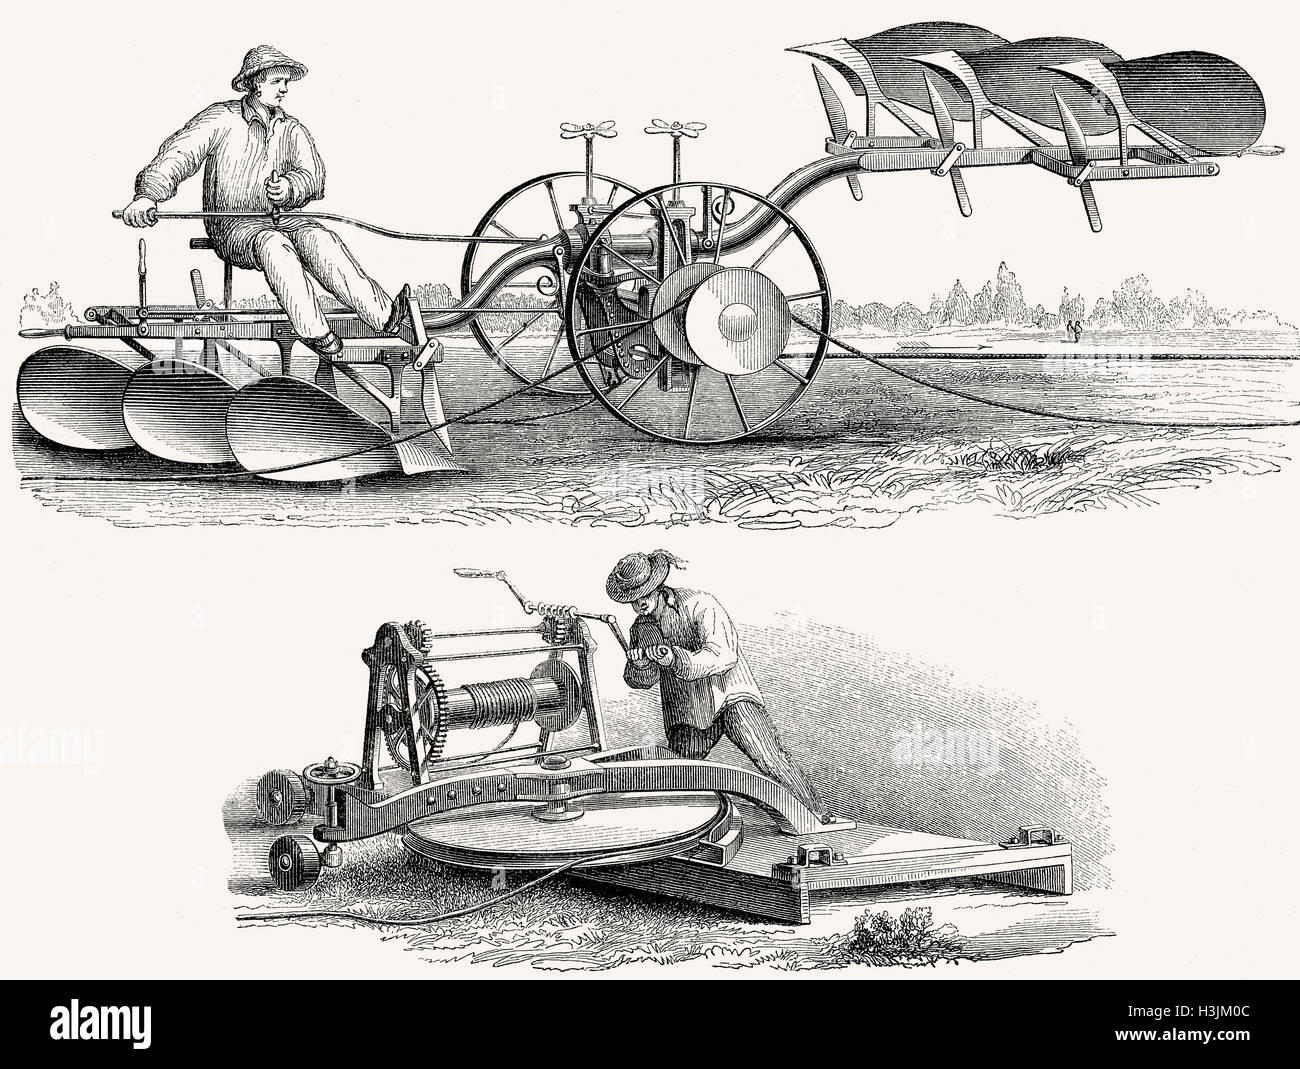 An agricultural plow system powered by a cable winch by muscular force, invented by M. Lotz, 19th Century - Stock Image